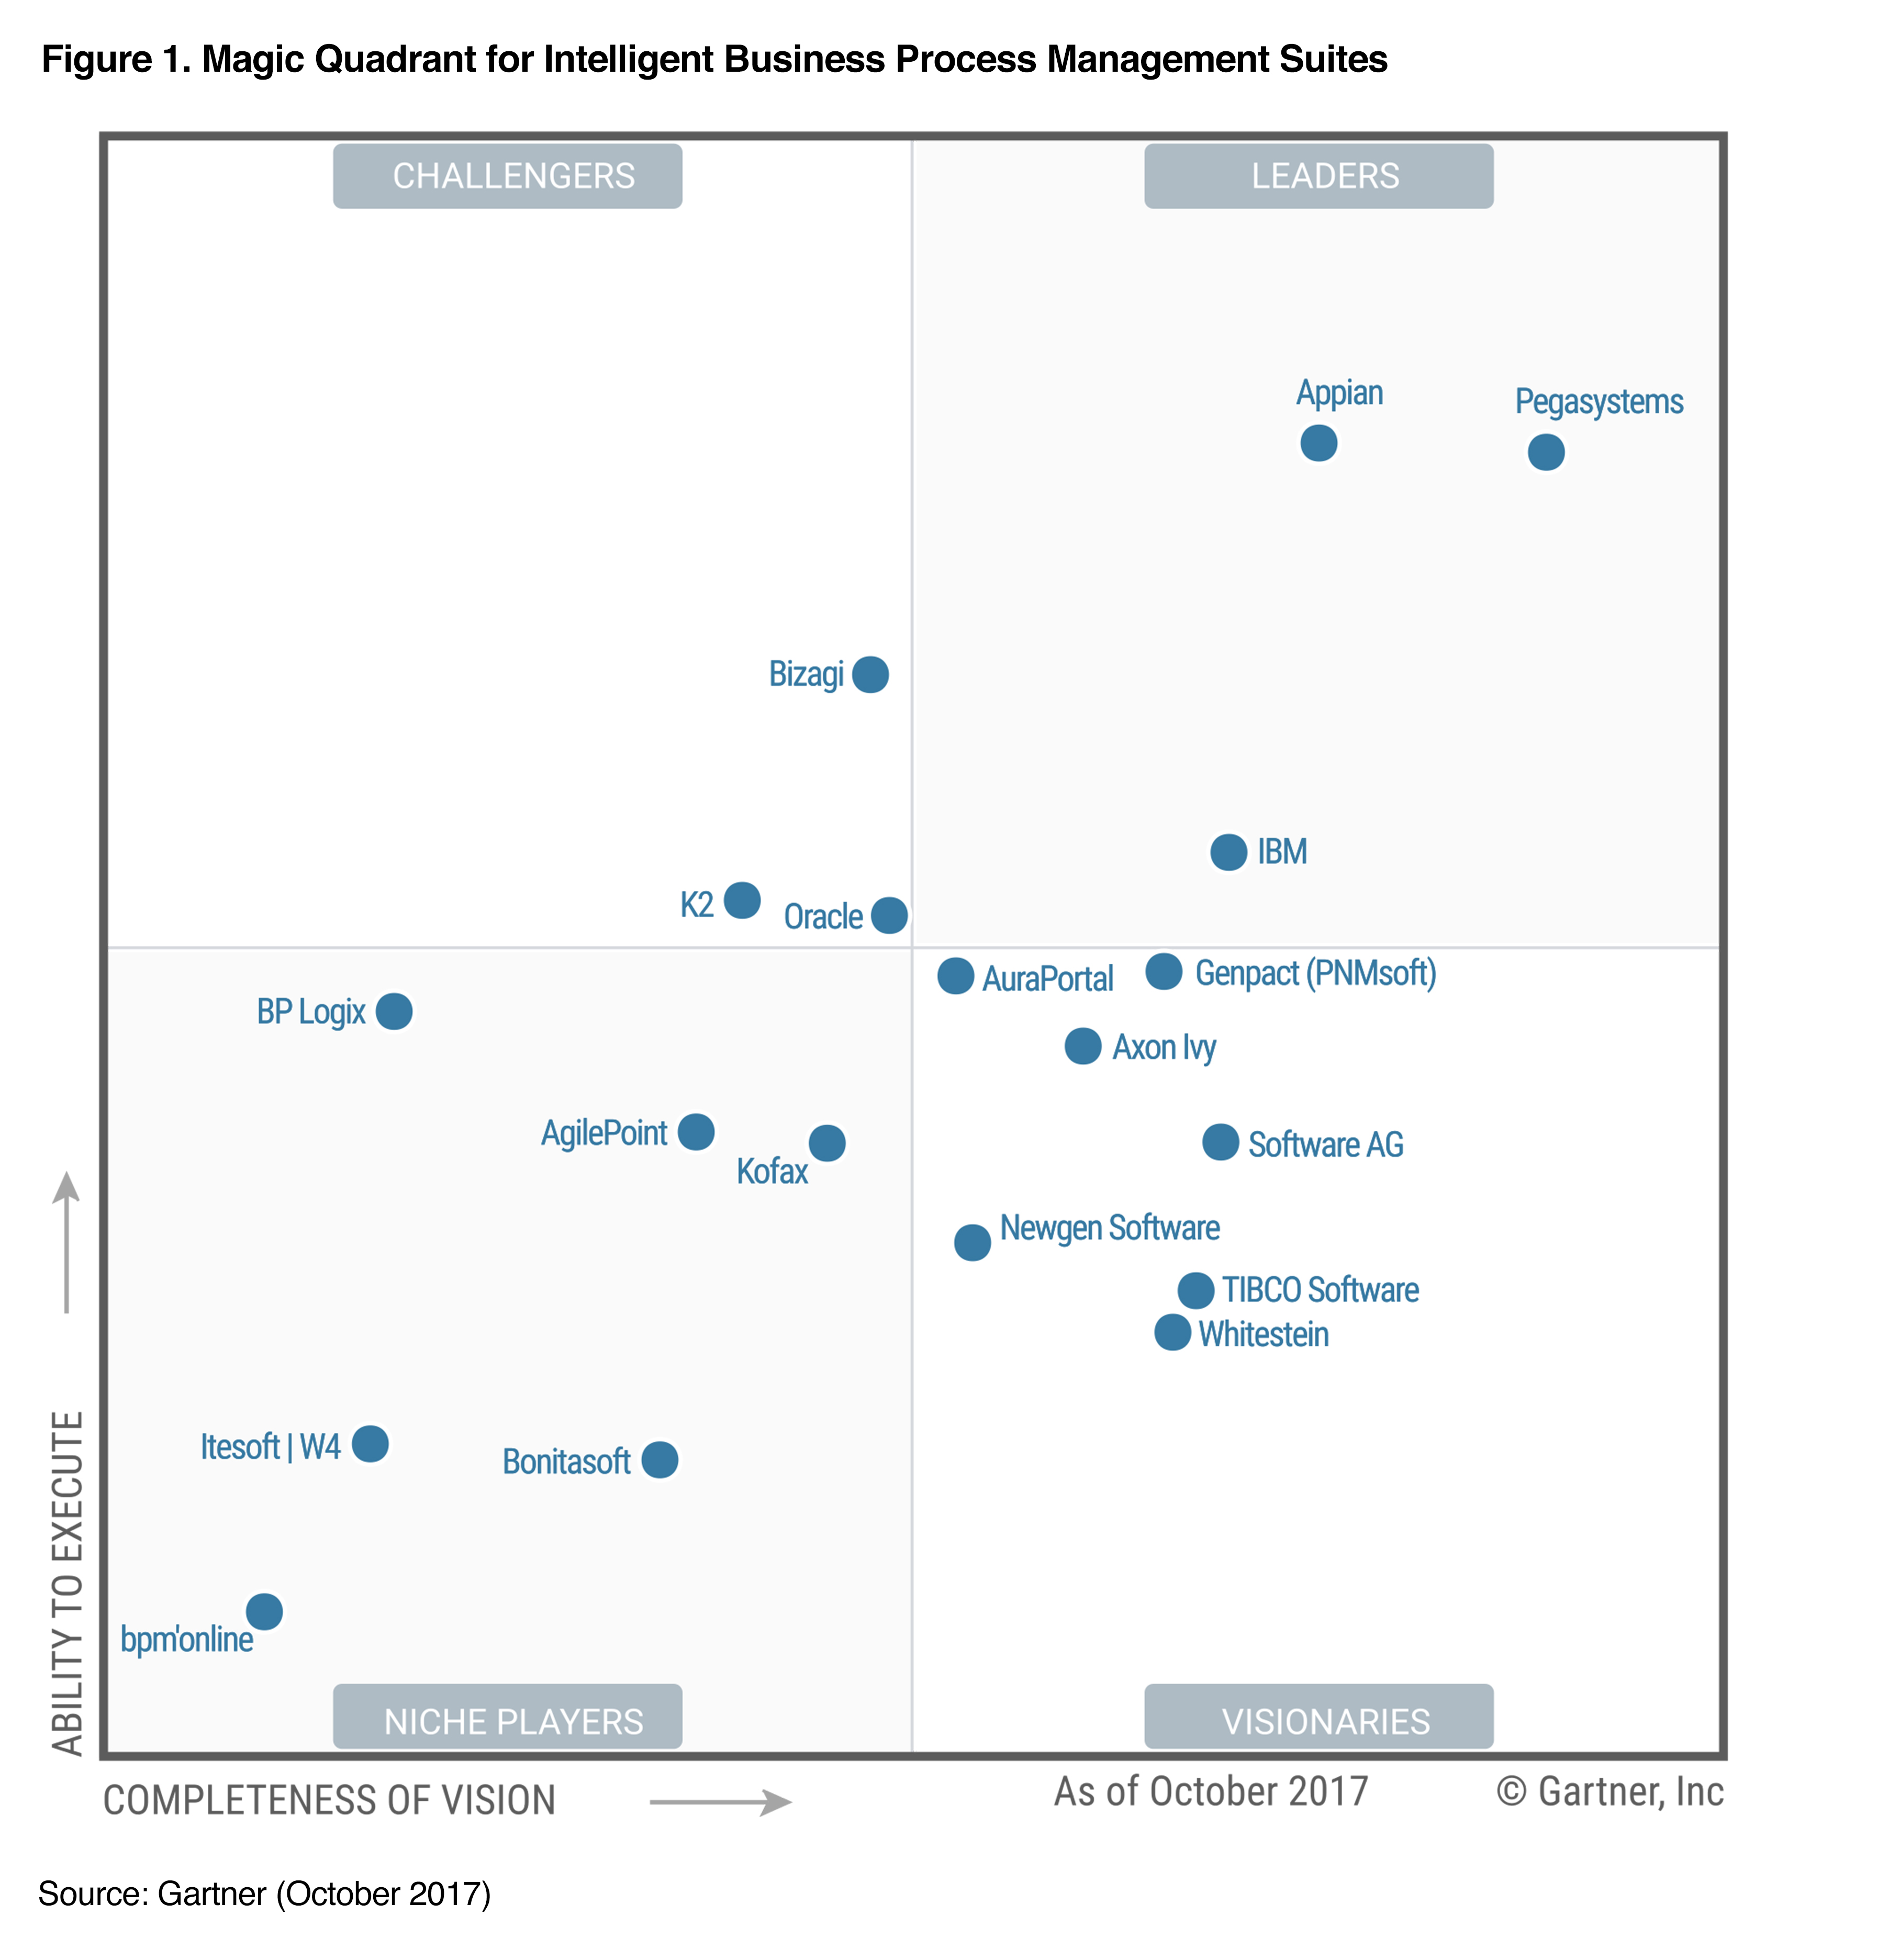 Bizagi Recognized As A Challenger In 2017 Magic Quadrant